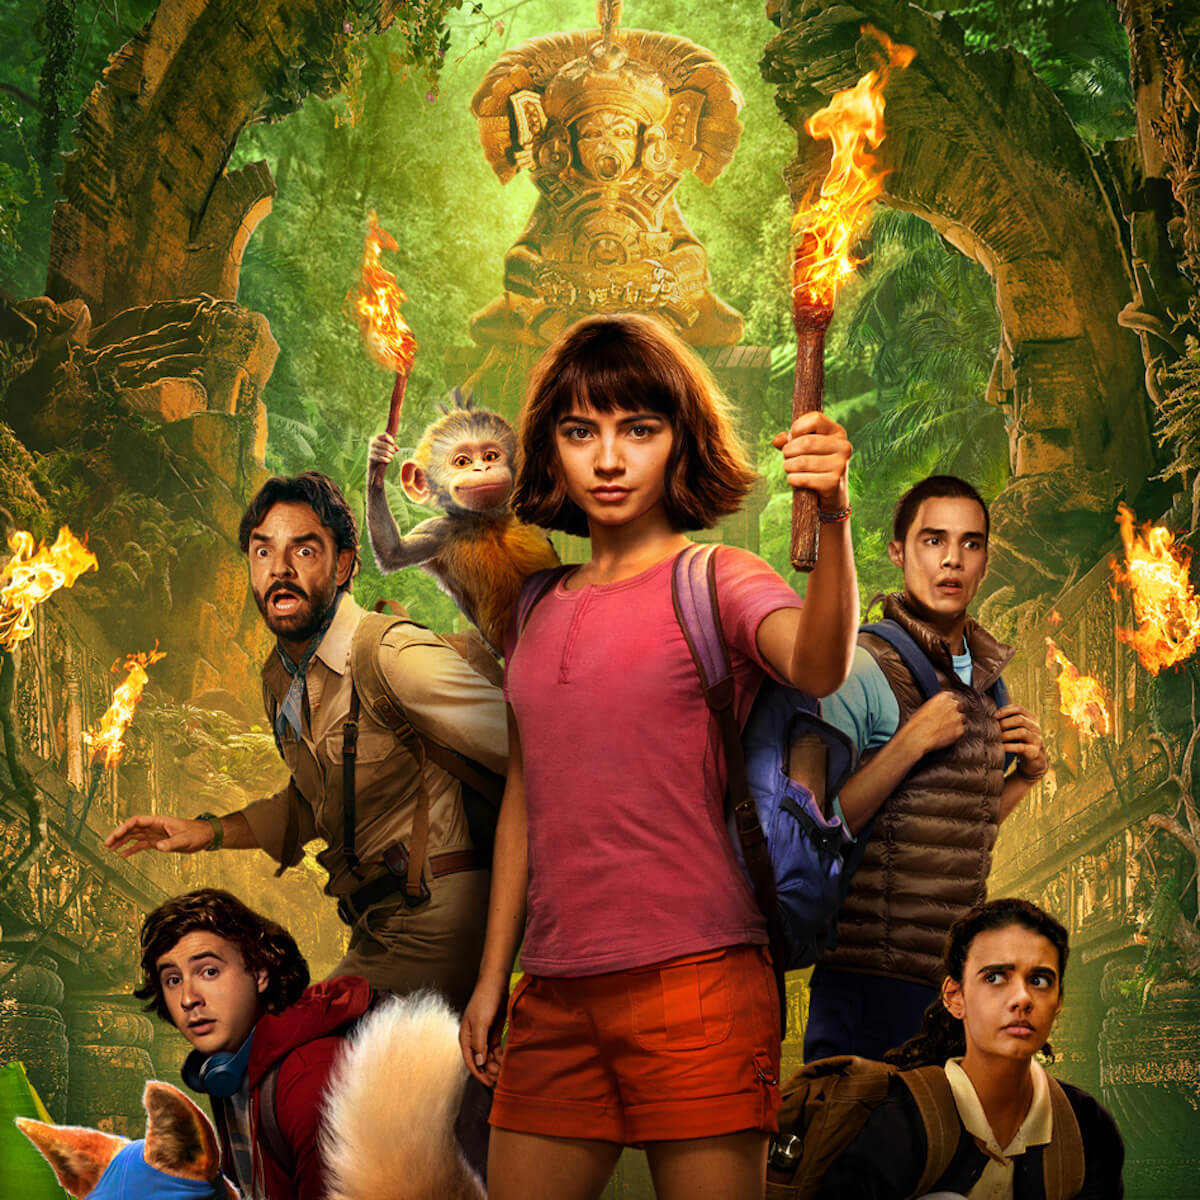 Dora and the Lost City of Gold Review: An example of how to make a quality family adventure